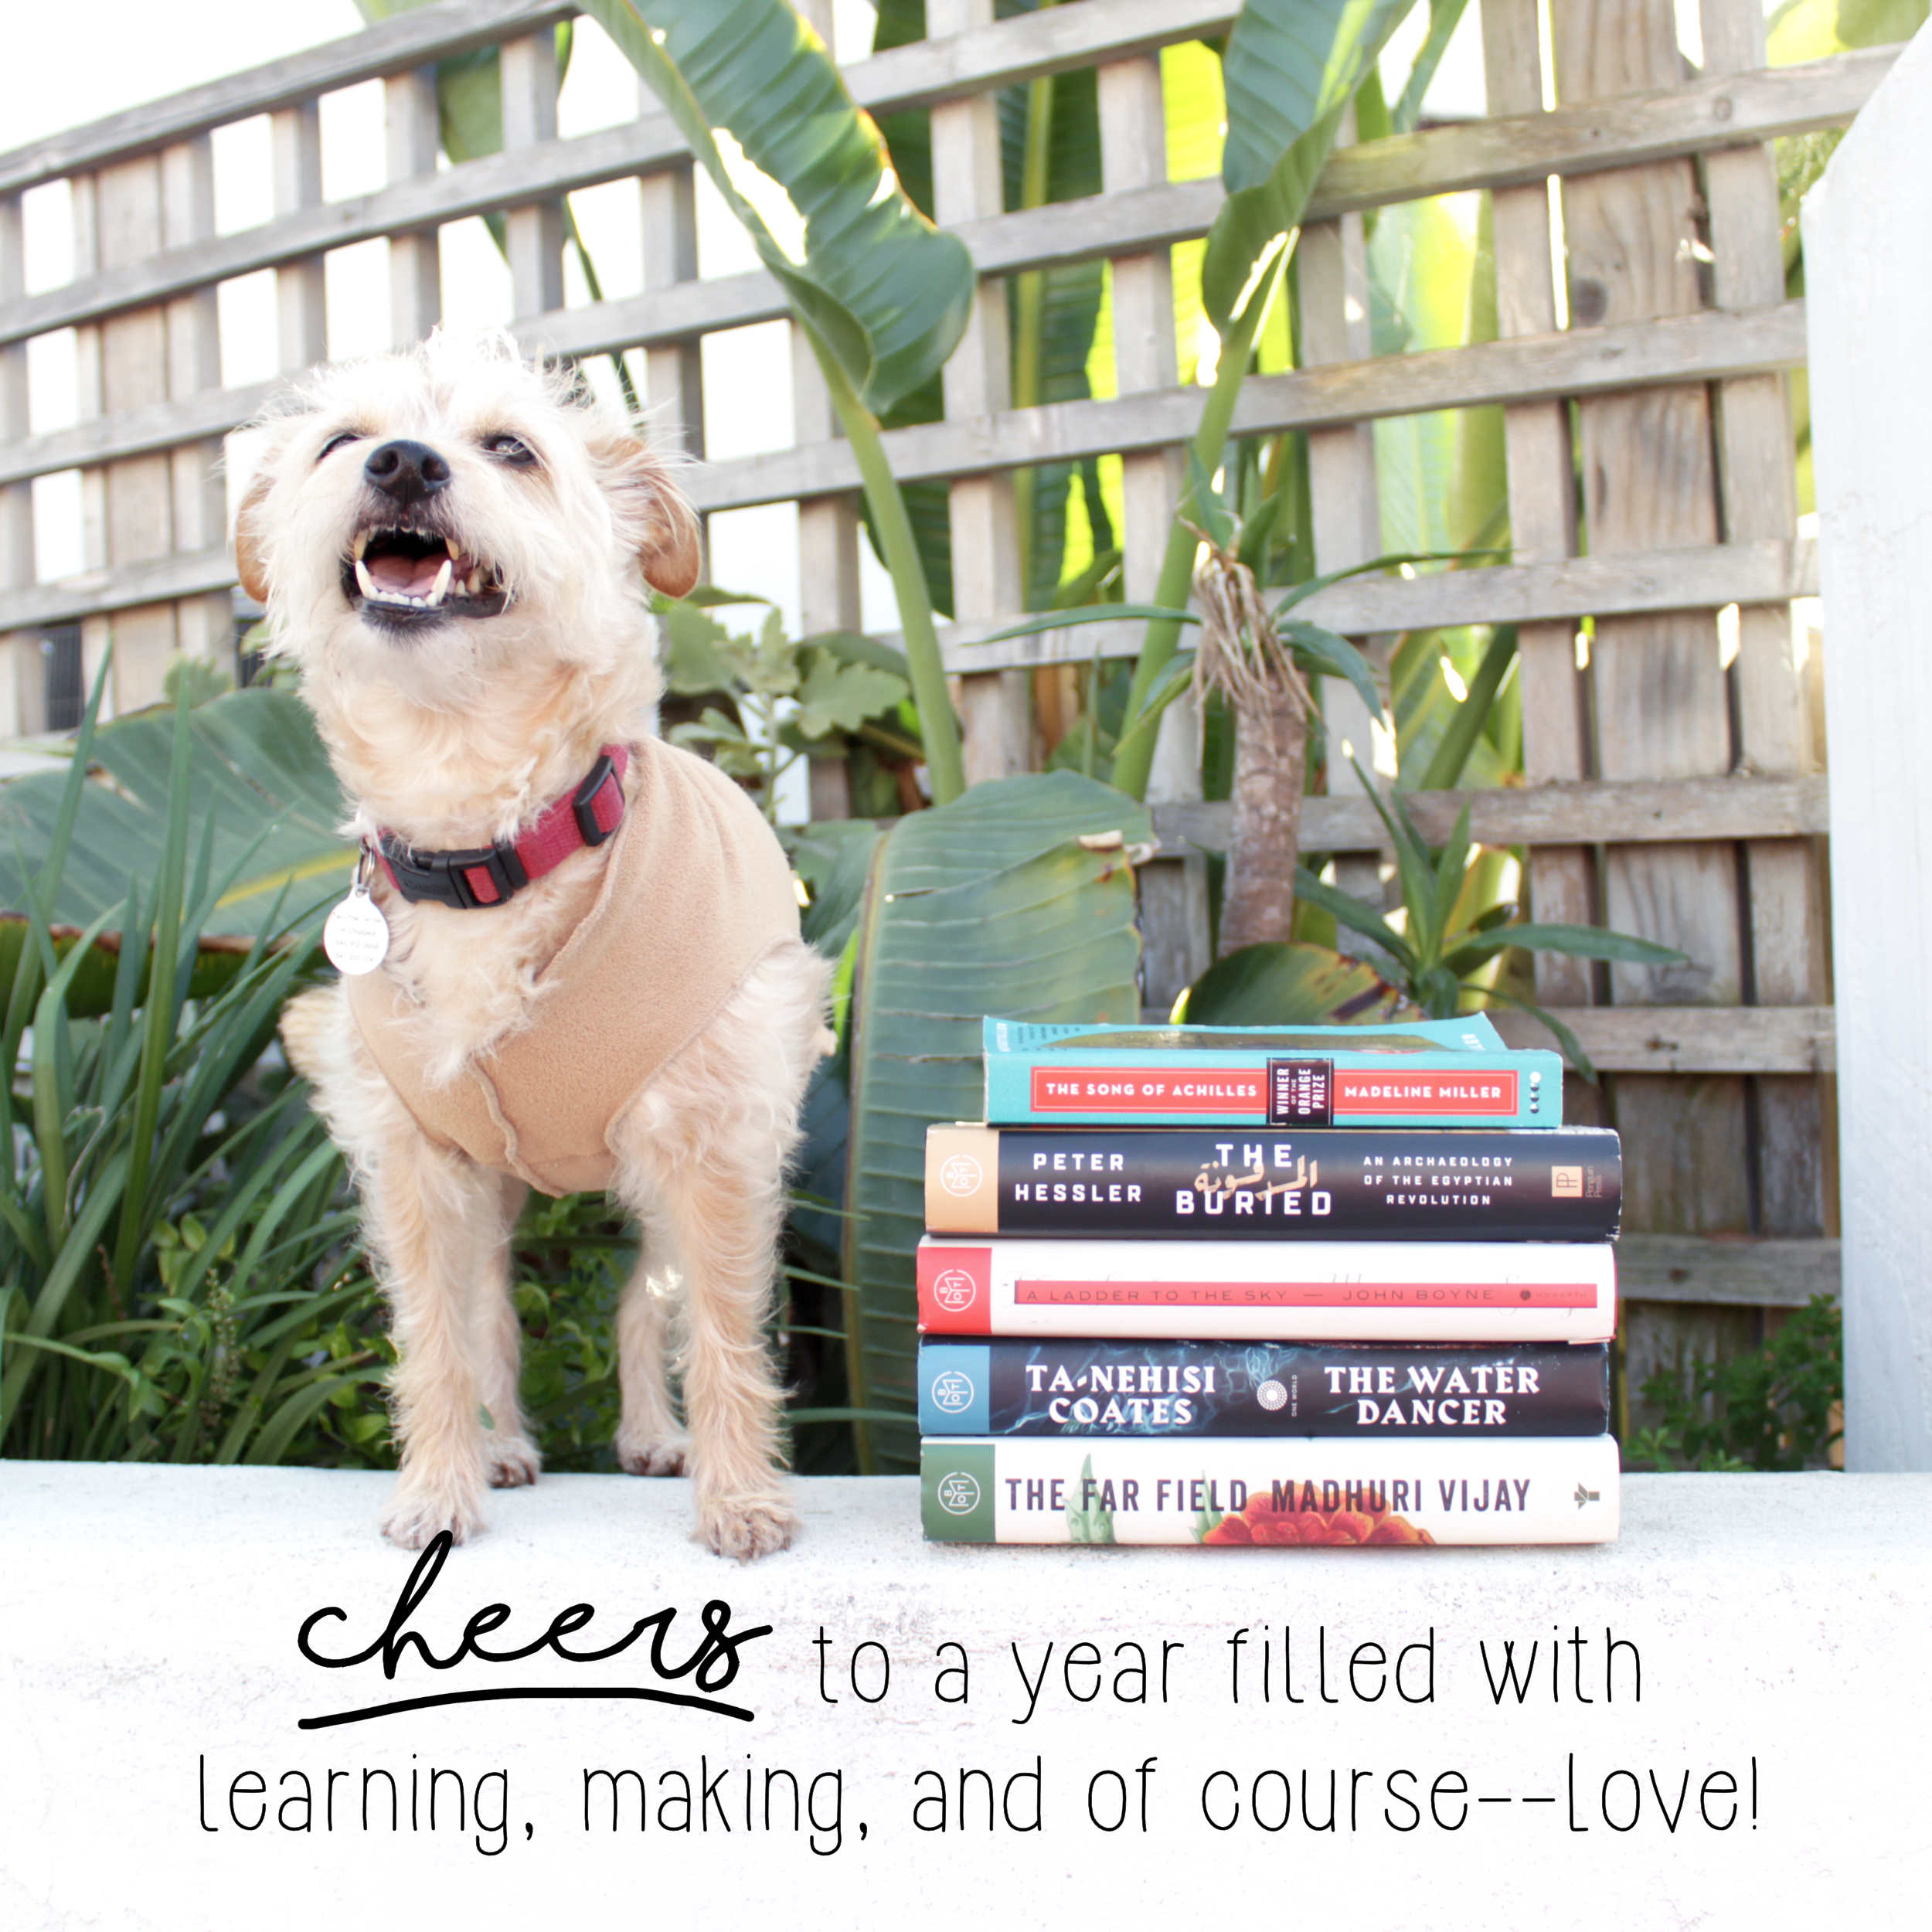 Favorite Sewing Projects & Reads Of The Year: Cheers!